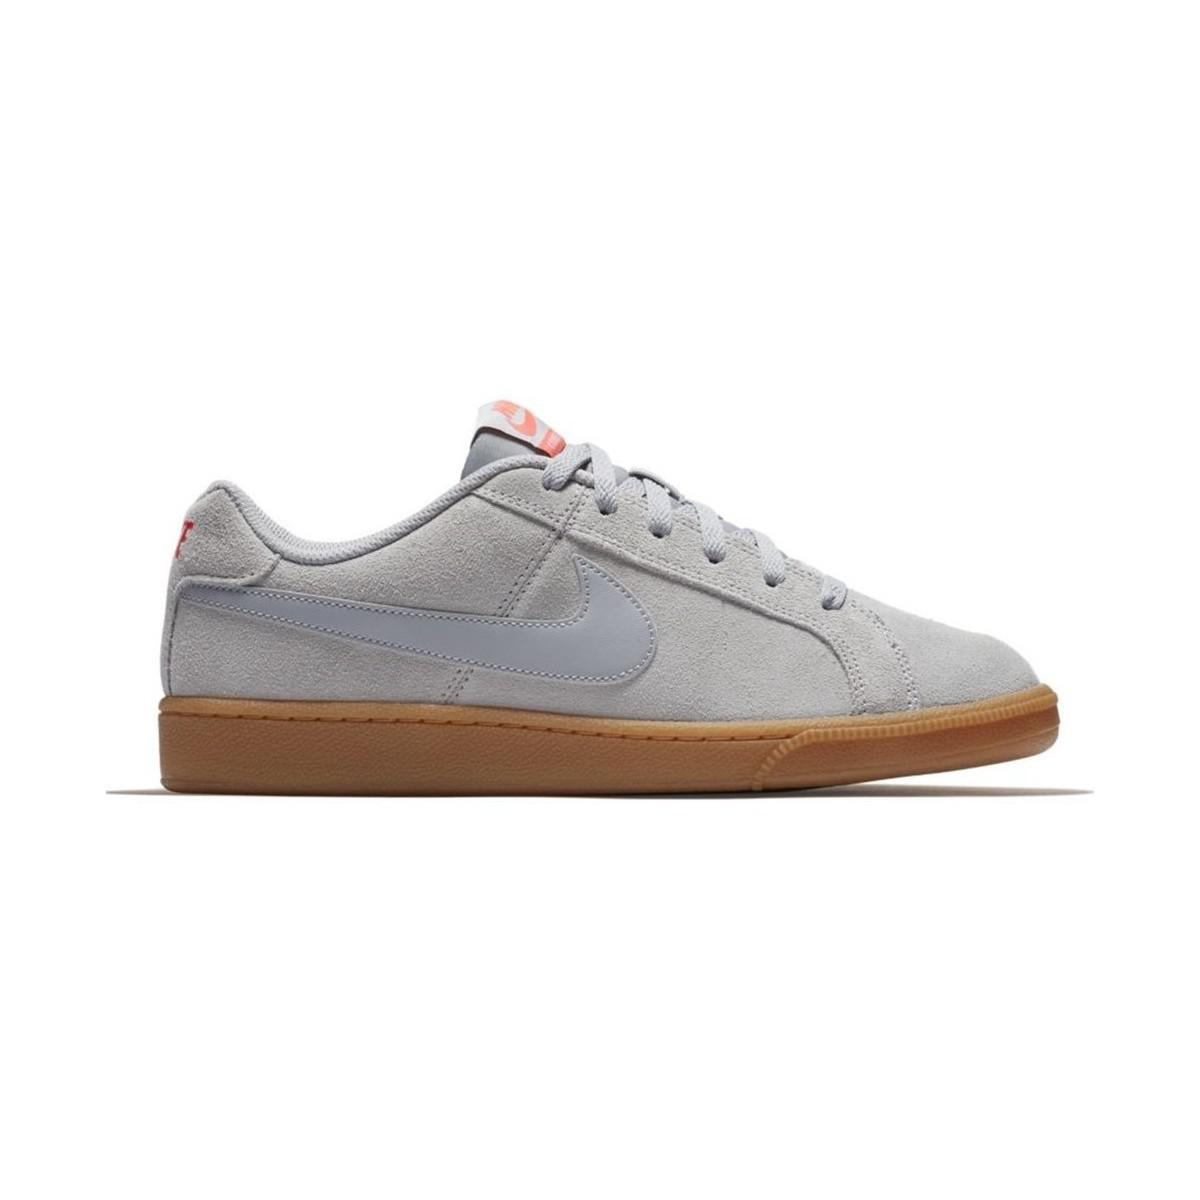 85e7f125342382 Nike Court Royale Suede Men s Shoes (trainers) In Grey in Gray for ...